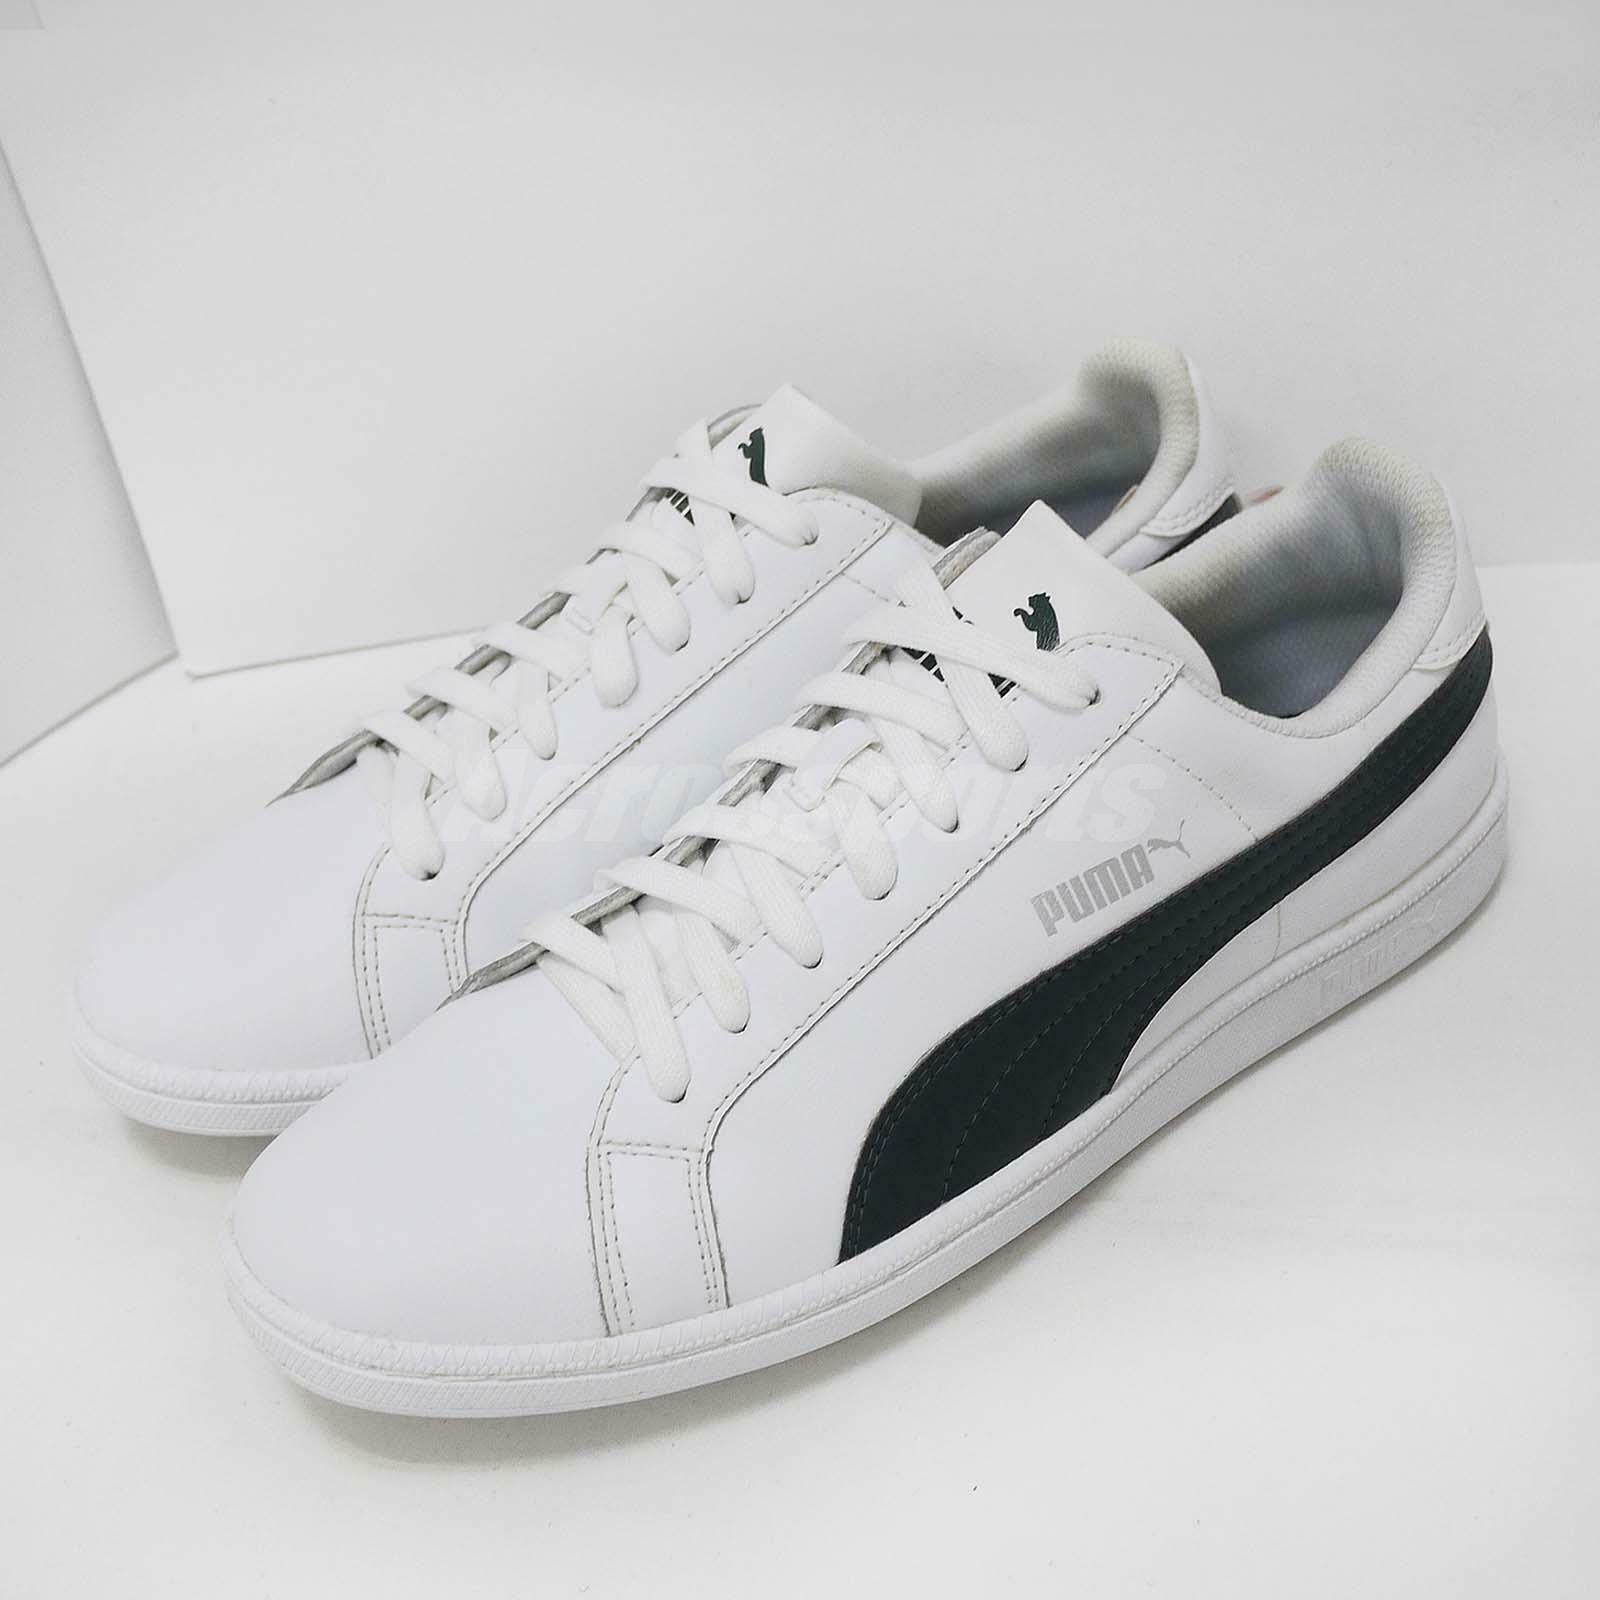 Puma Smash L Pre-owned With Stains Defect DisColoration Men zapatos UK9.5 356722-19